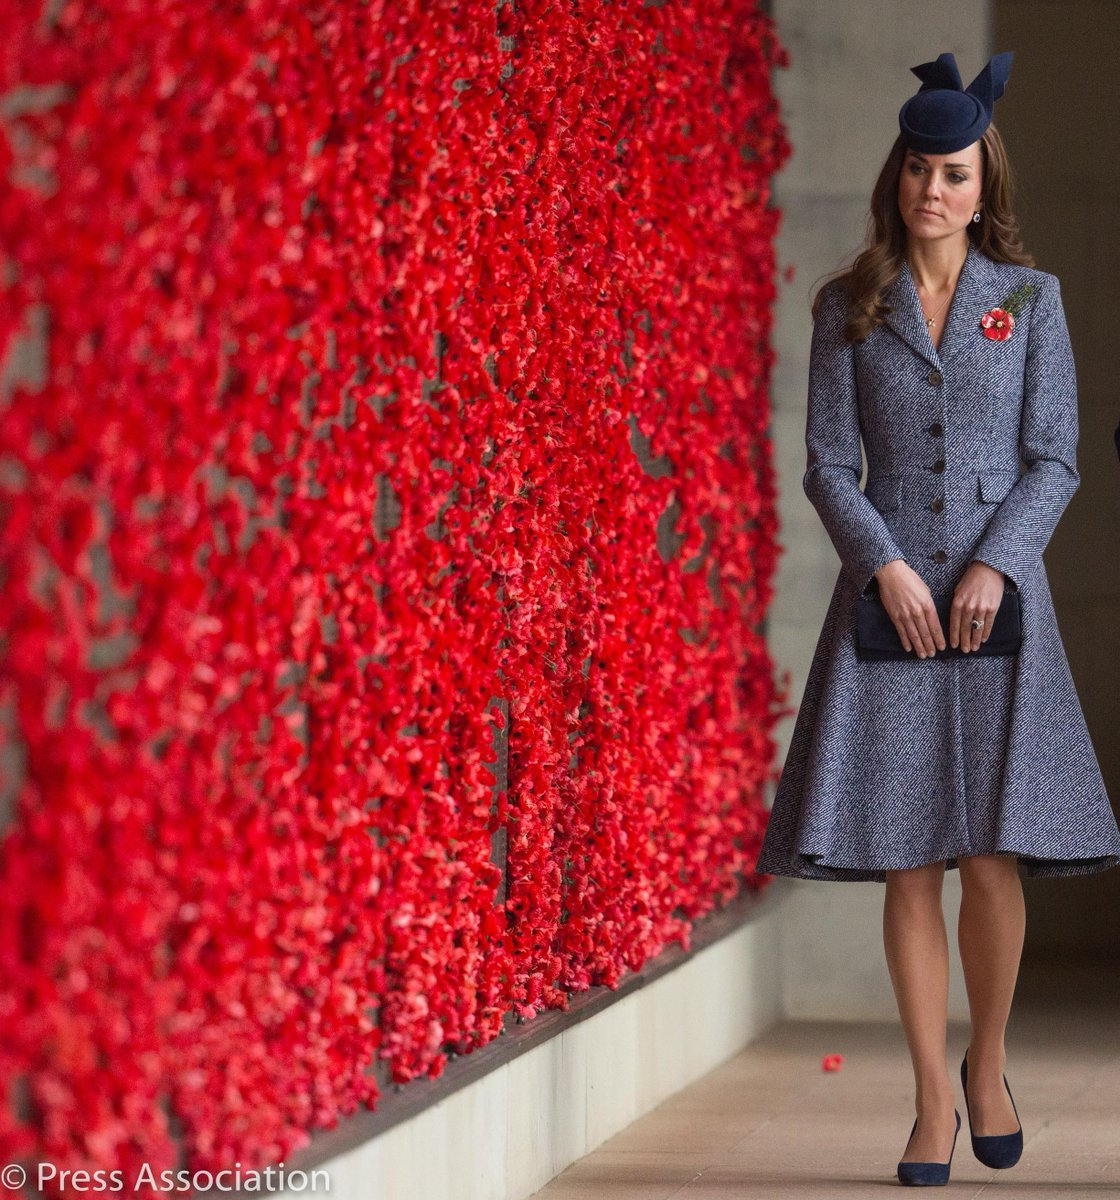 Kensington Palace's photo on Anzac Day